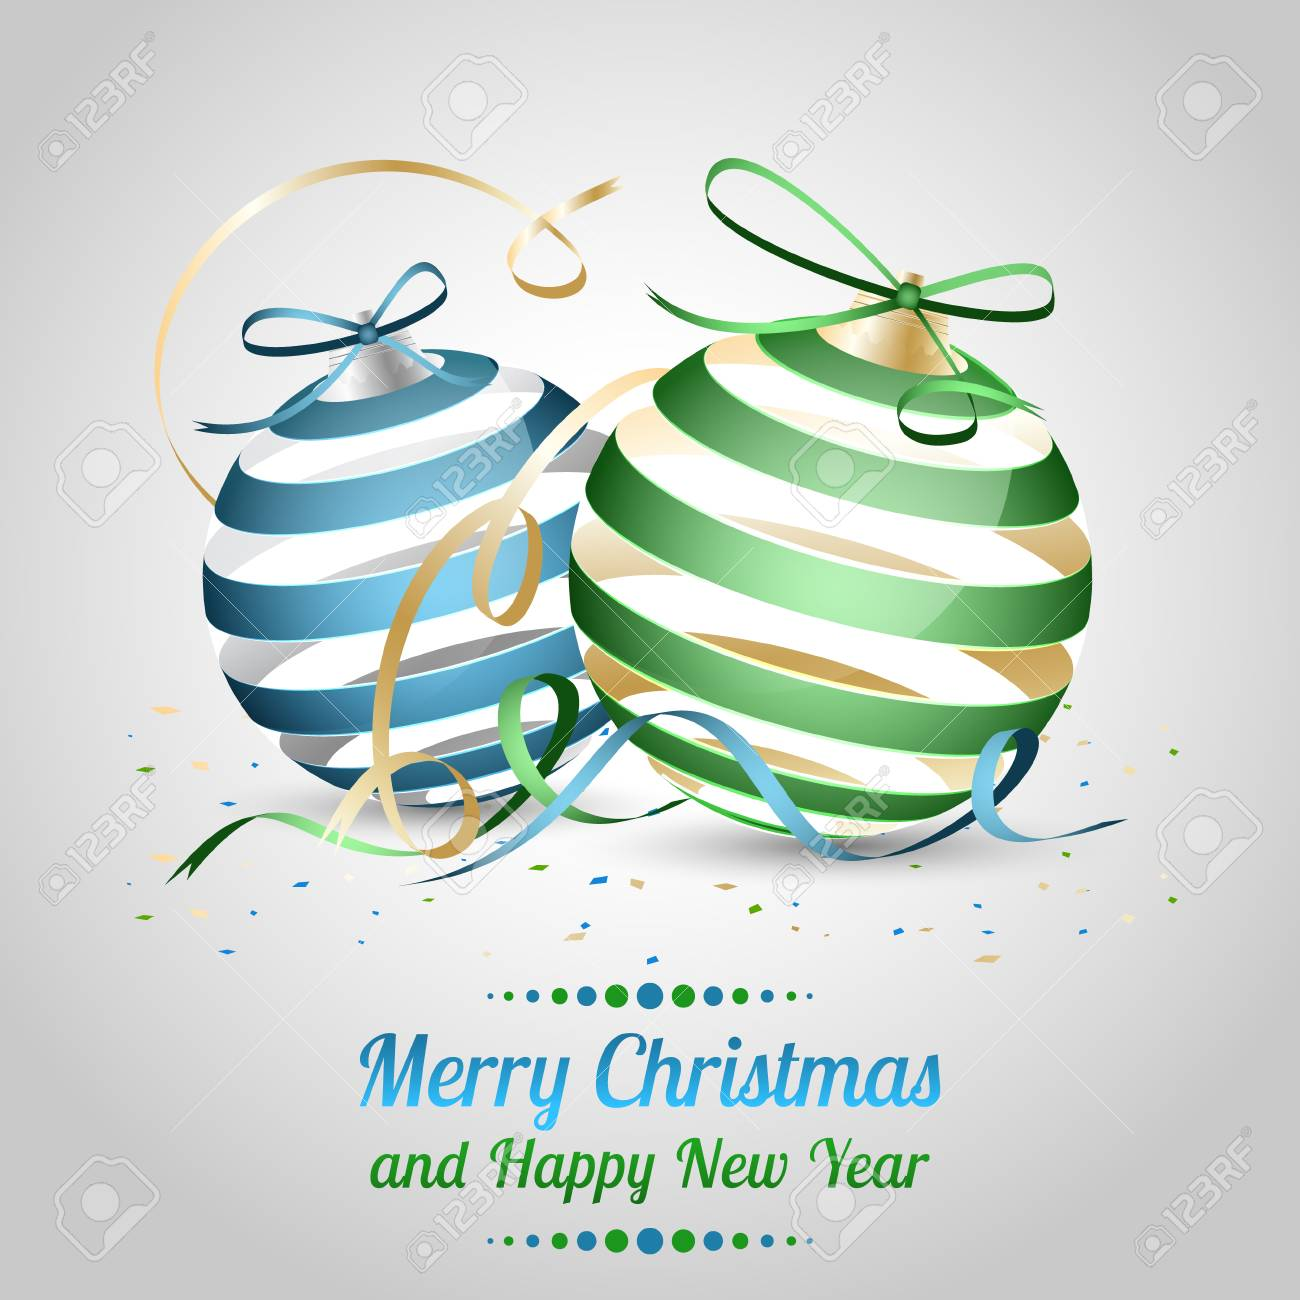 christmas and new year vector illustration as a wish with blue and green christmas baubles